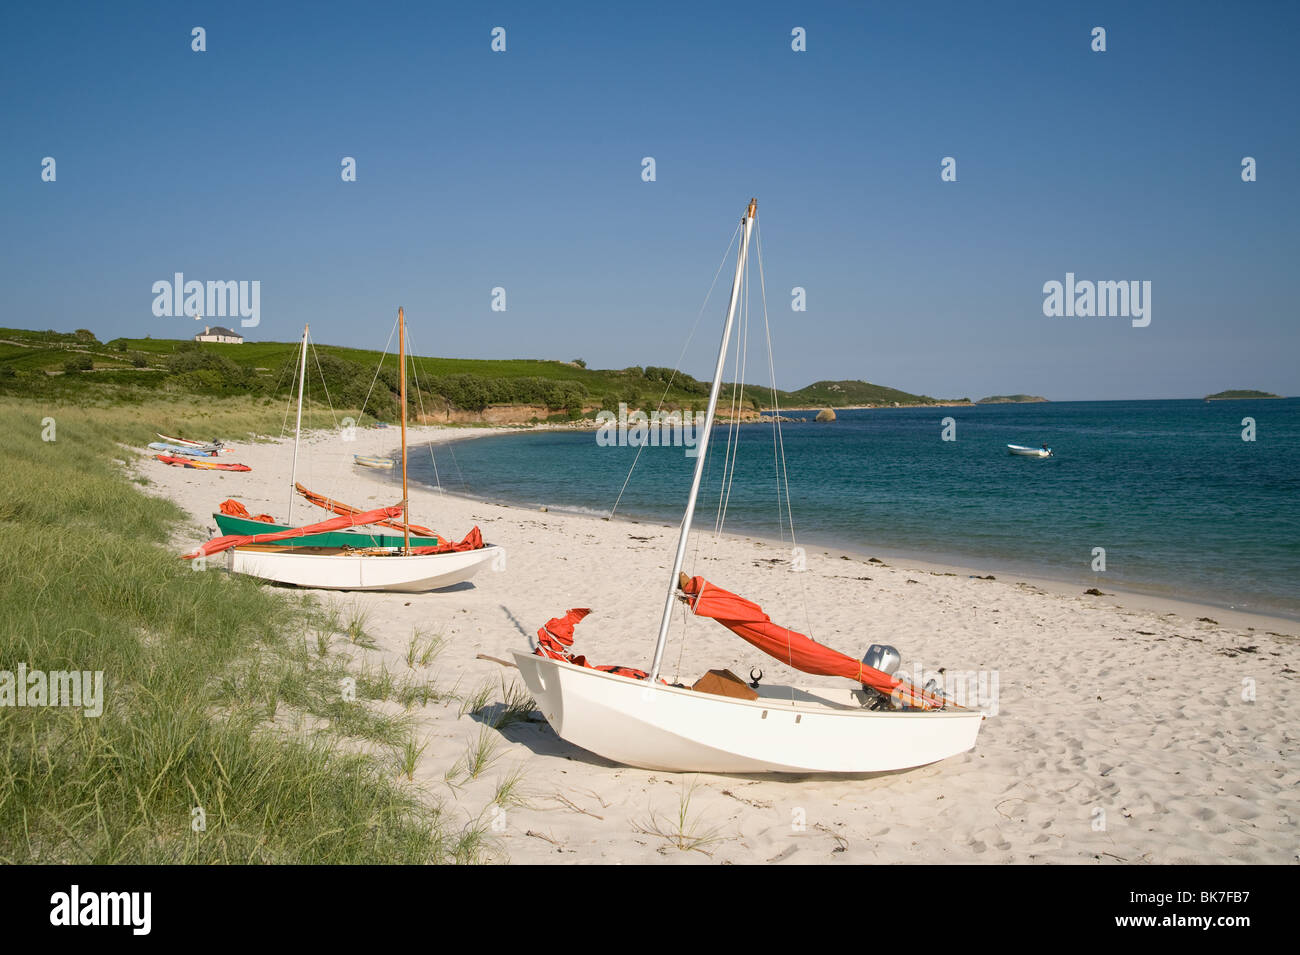 Higher town beach on st martins in the isles of scilly - Stock Image